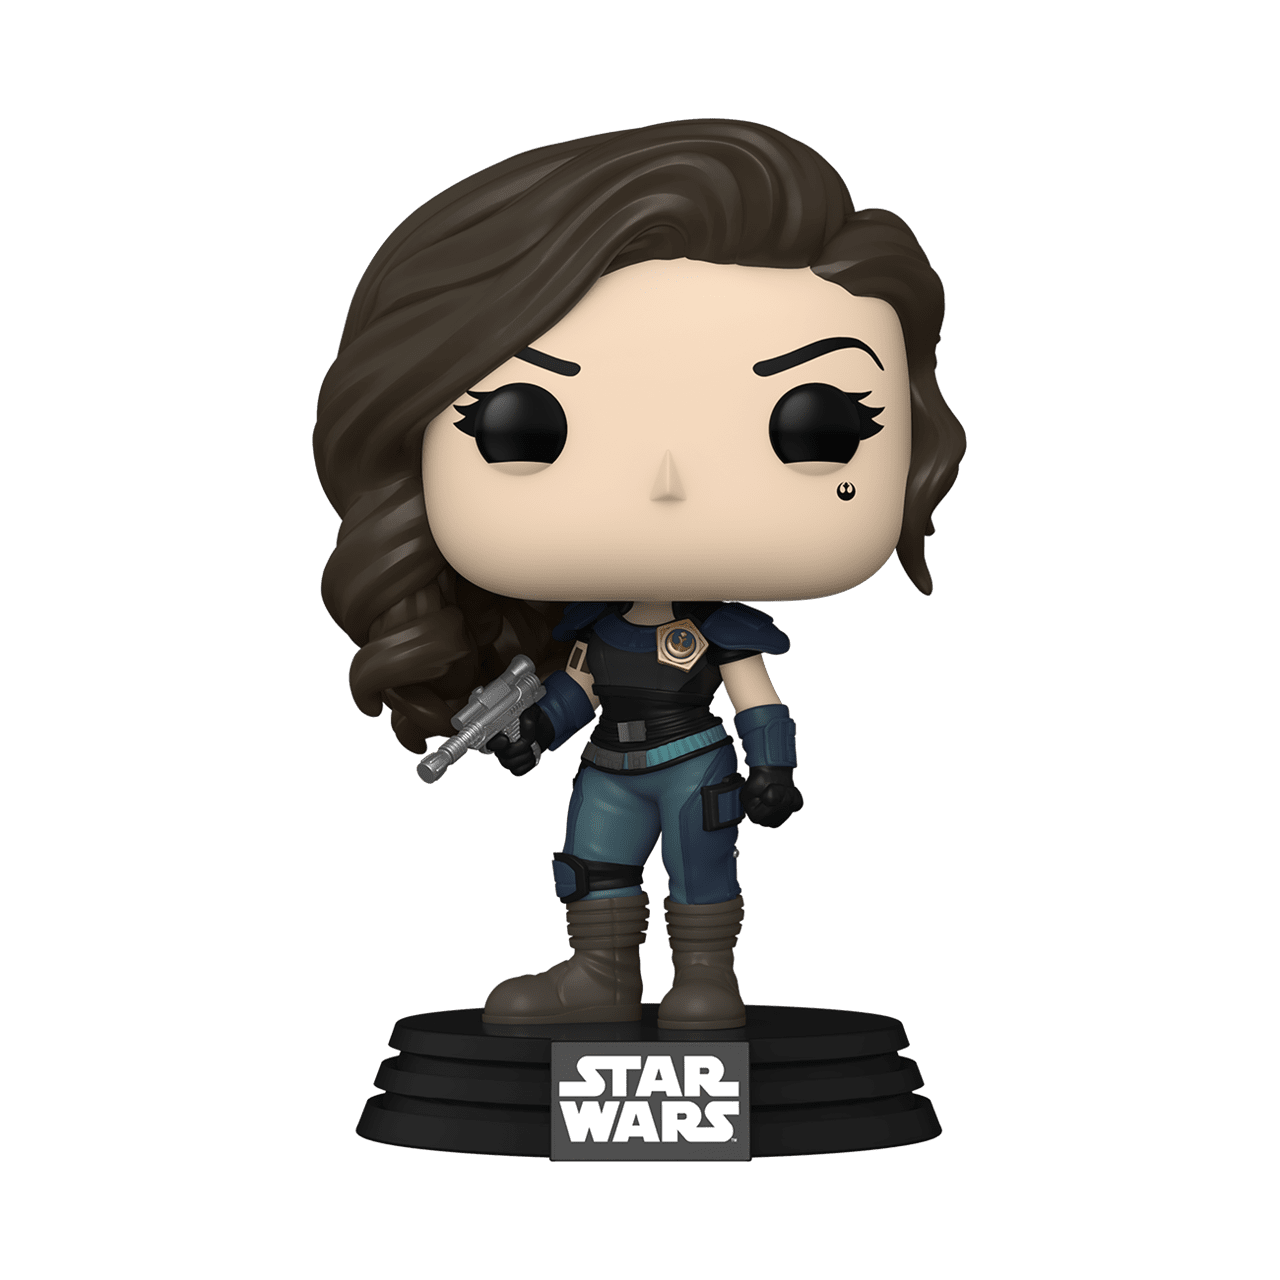 The Mandalorian: Cara Dune (403) Star Wars Pop Vinyl - 1